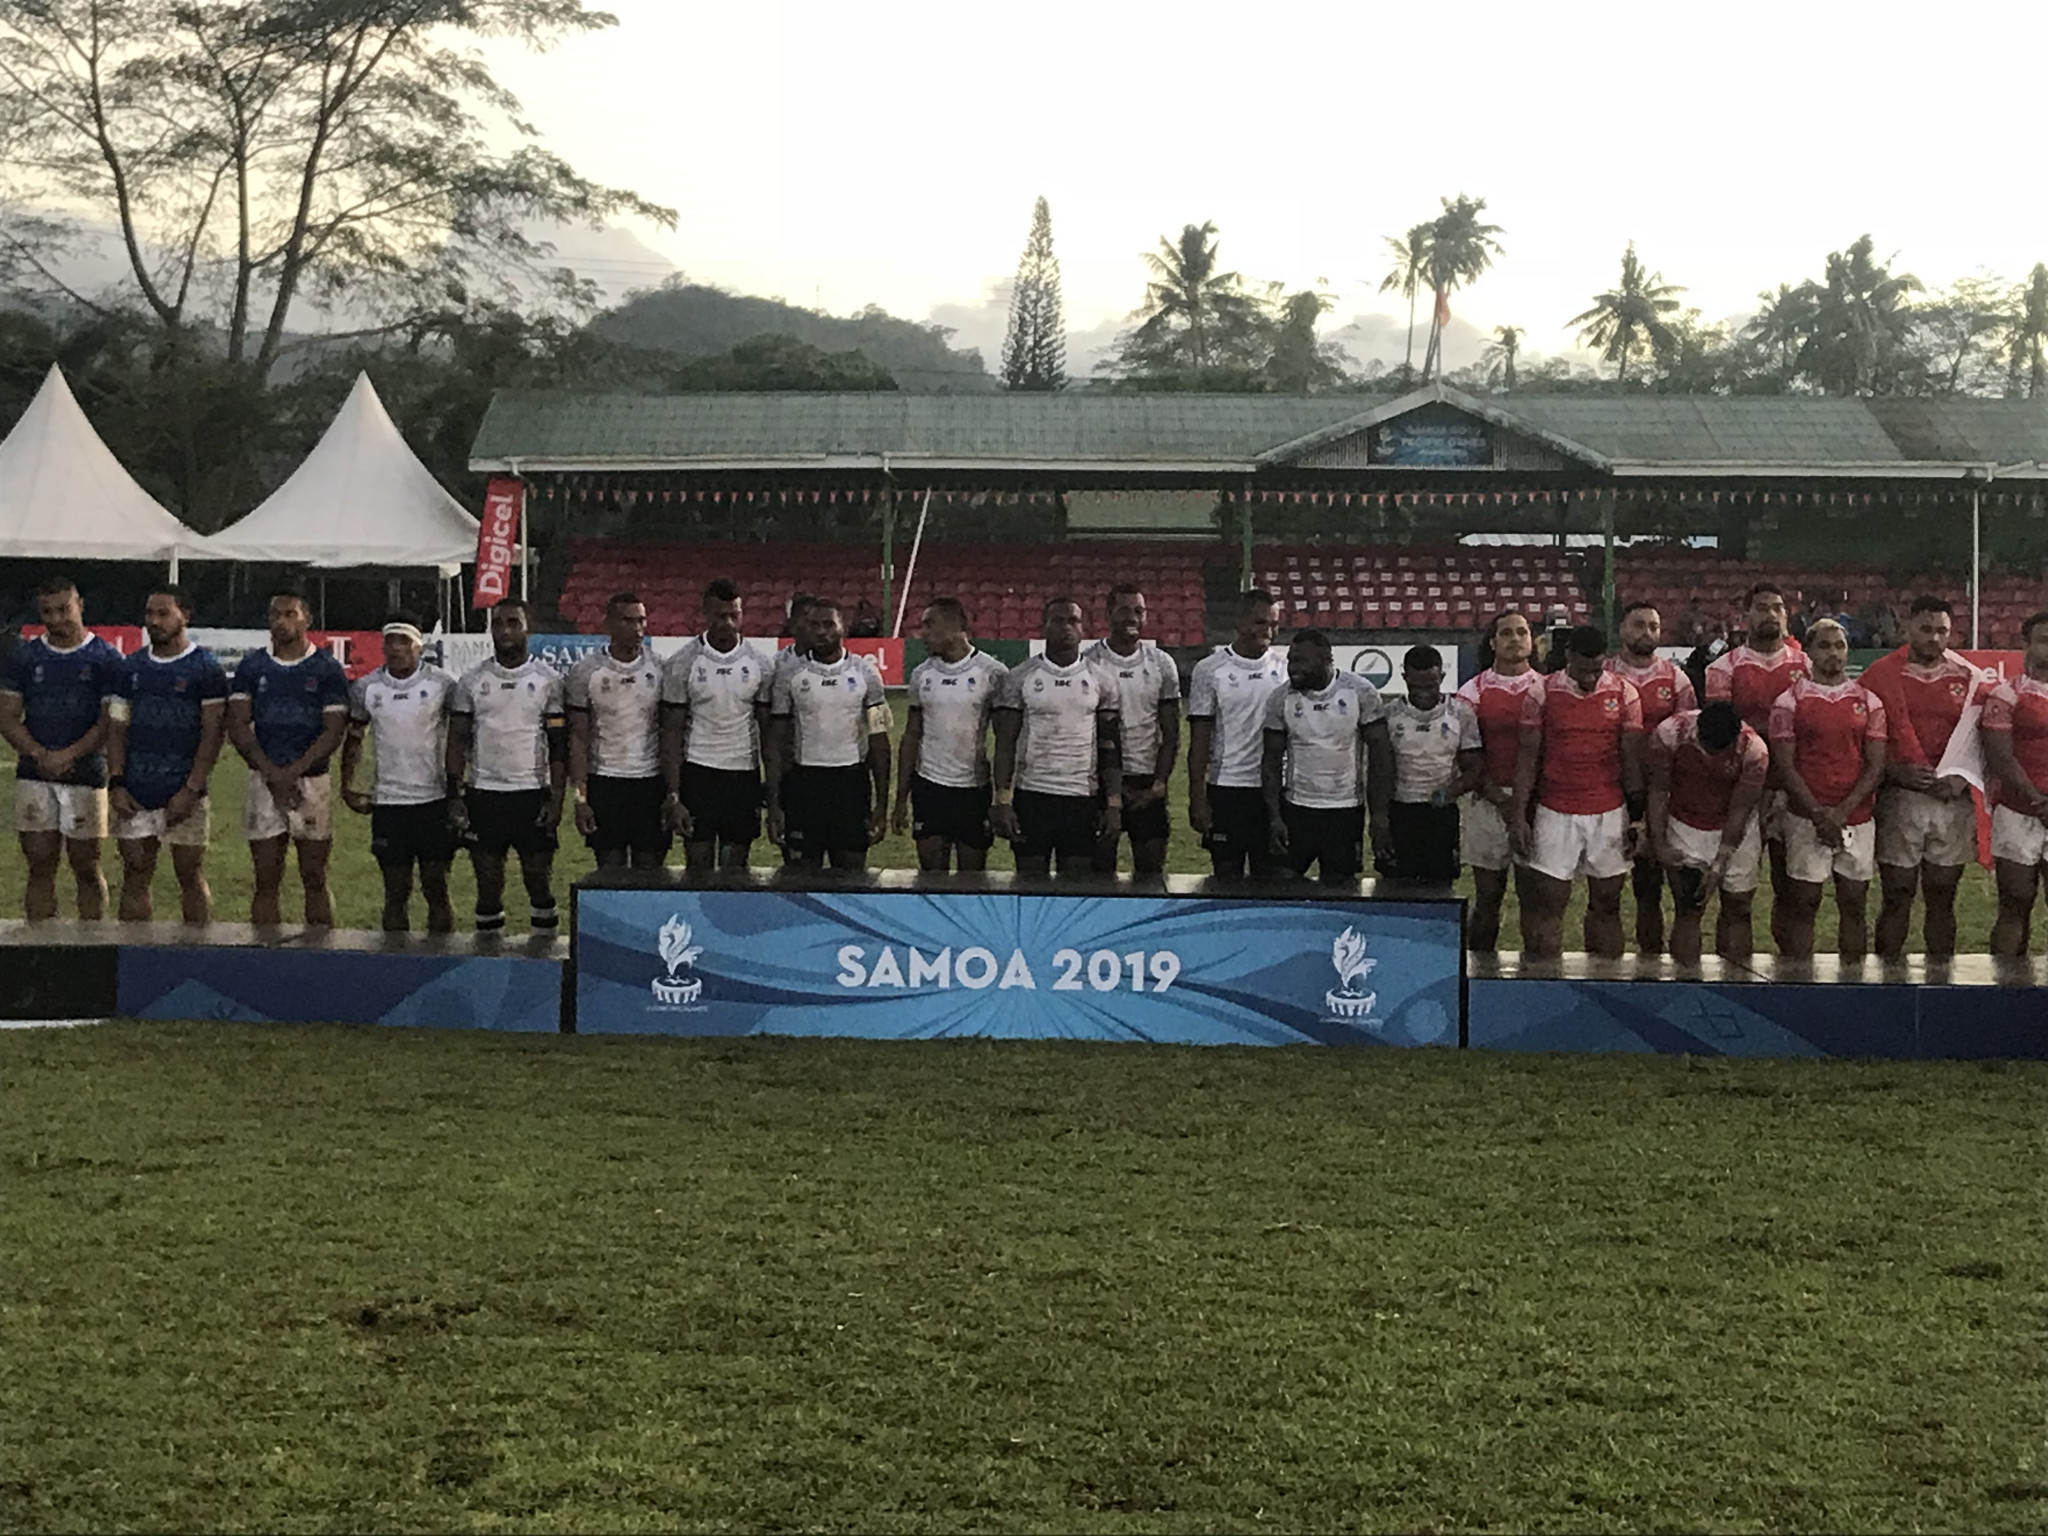 Fiji complete 2019 Pacific Games rugby clean sweep with two gold medals in the sevens